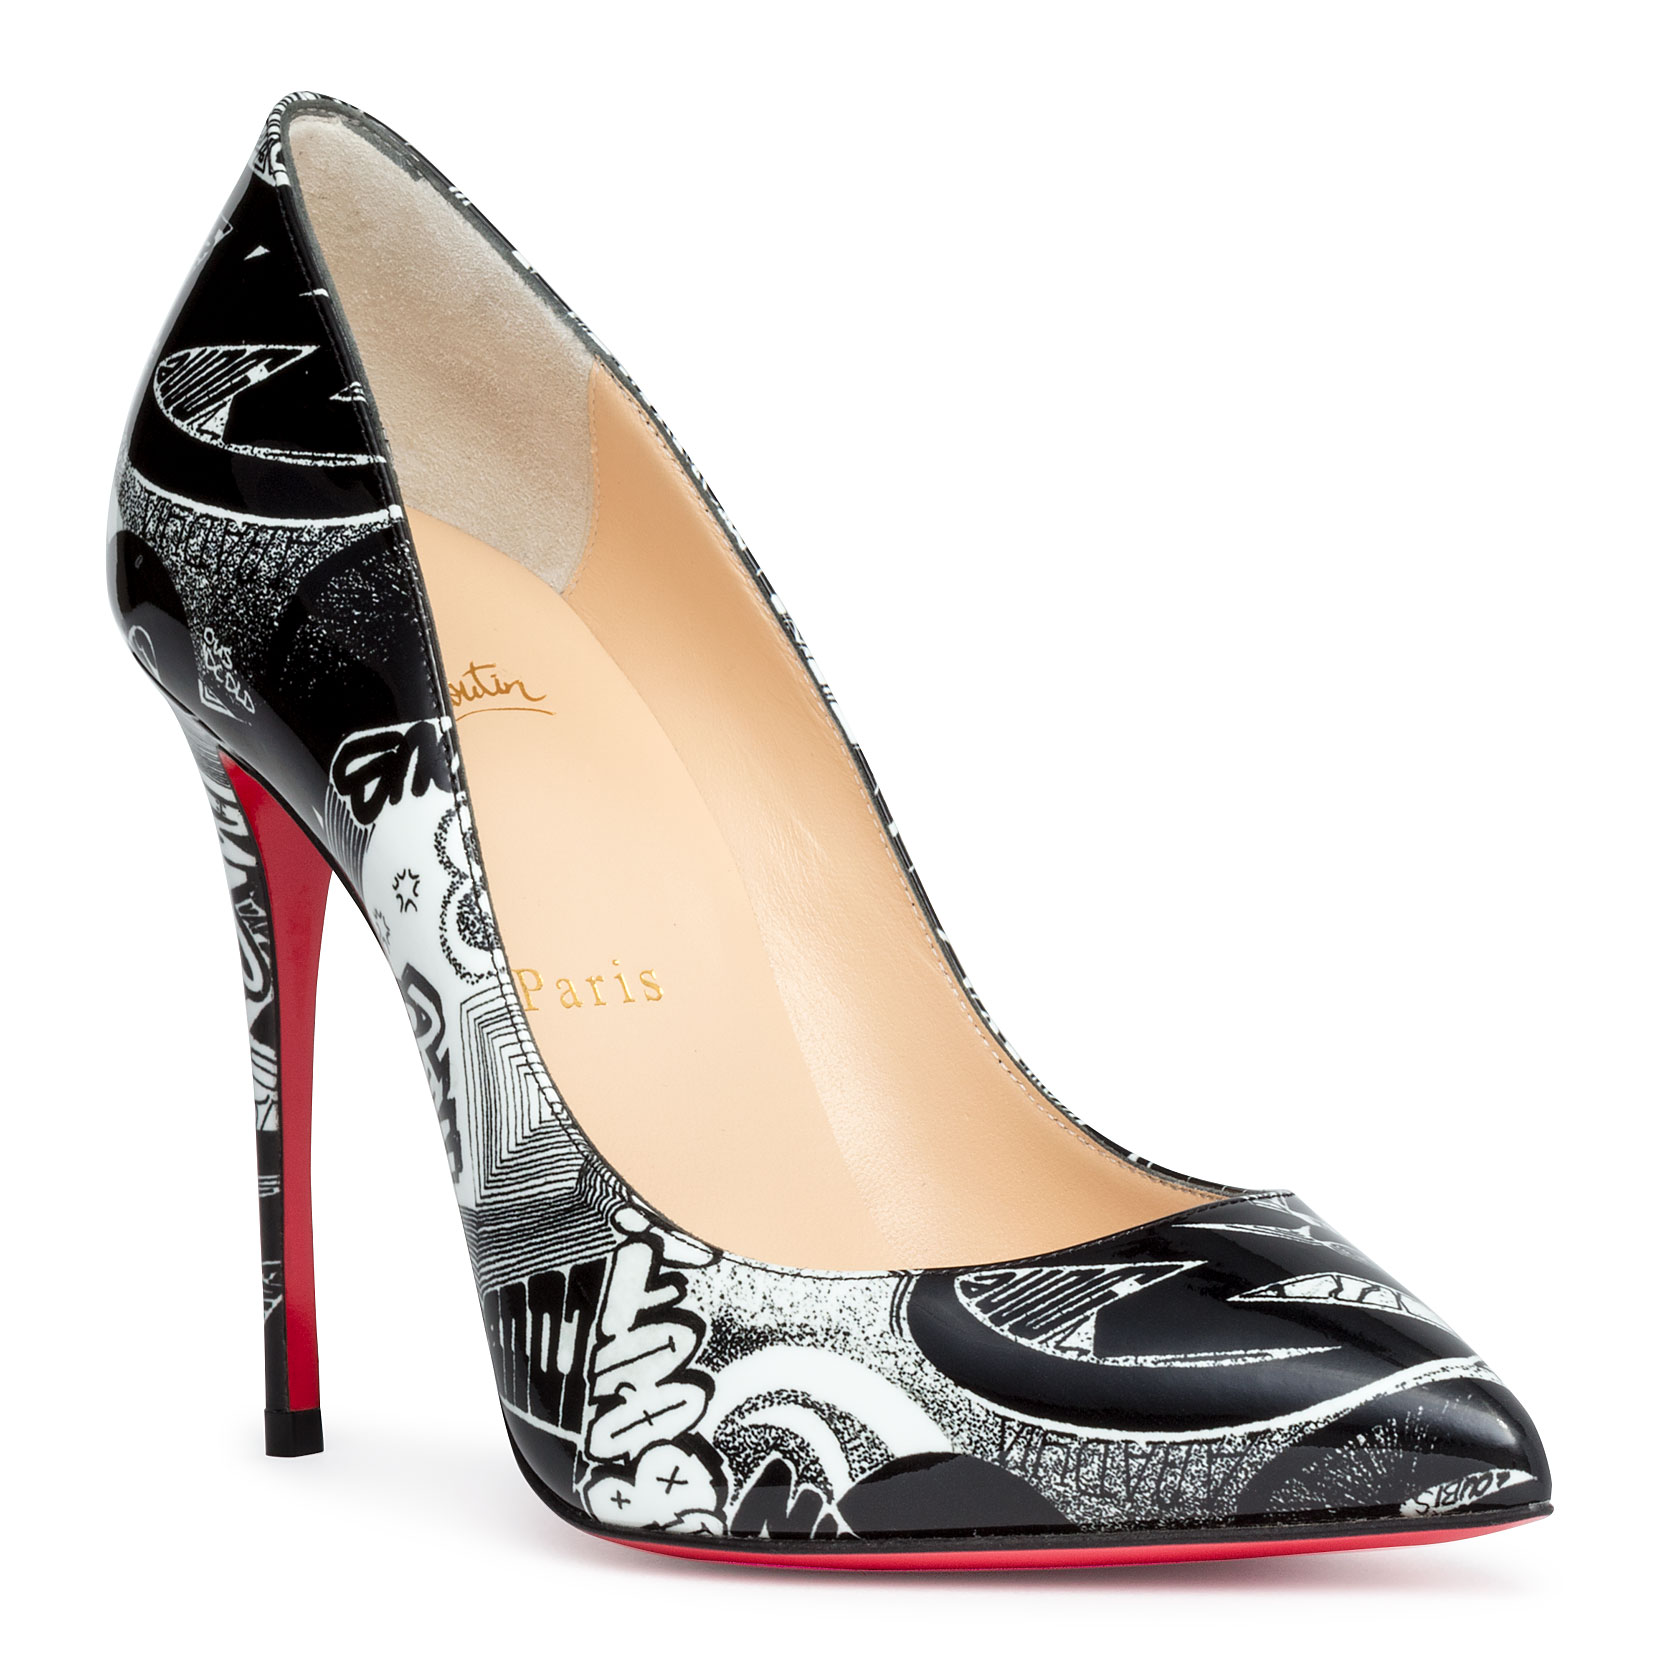 100 Pumps In Leather Black Follies Pigalle Nicograf Printed Patent 76bgfy